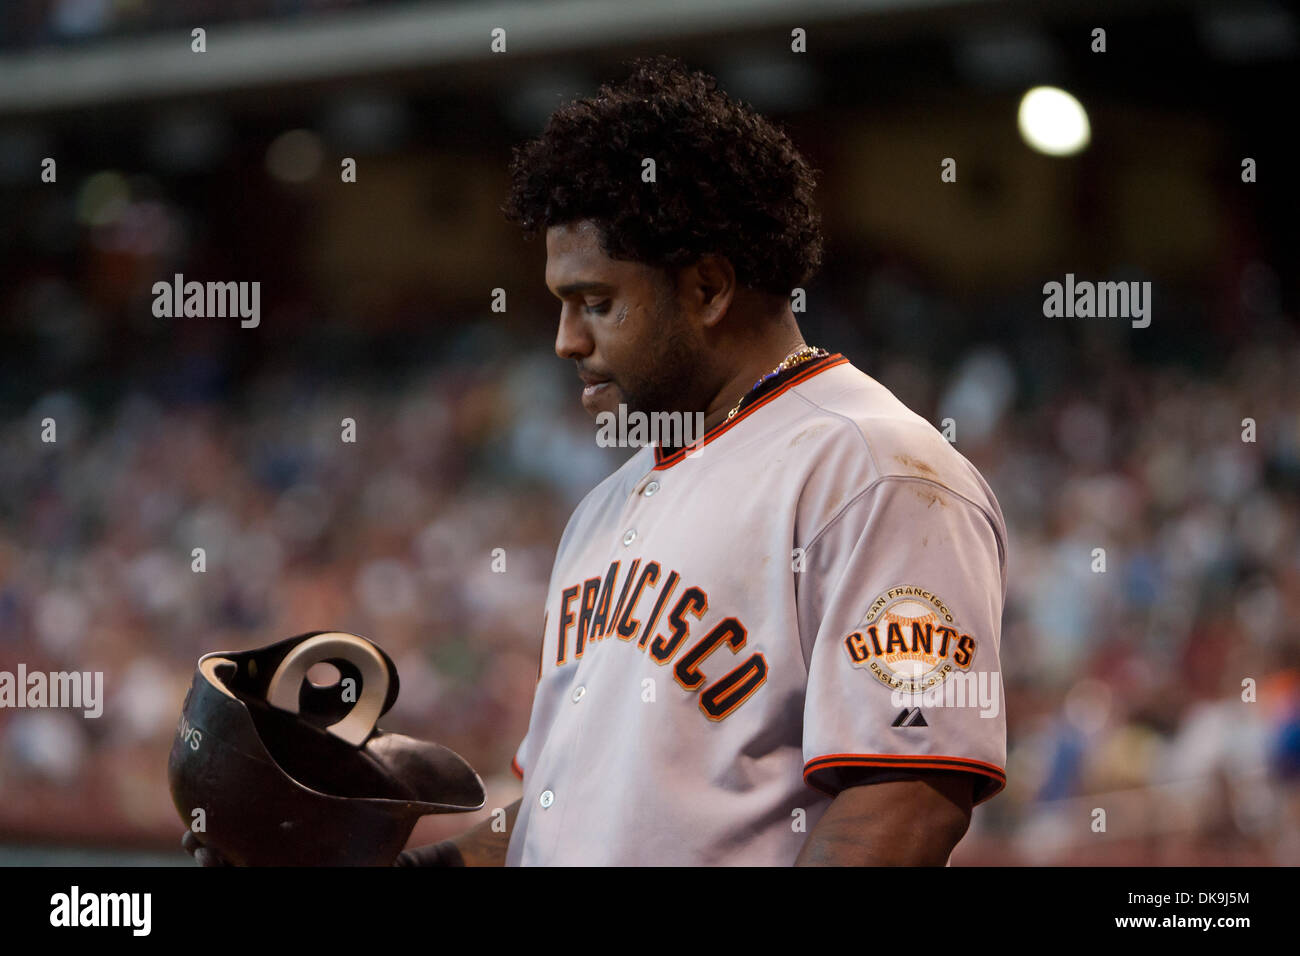 21 2011 houston texas us san francisco if pablo sandoval 48 in the batters box san francisco giants defeated the houston astros 6 4 in box san francisco office 6